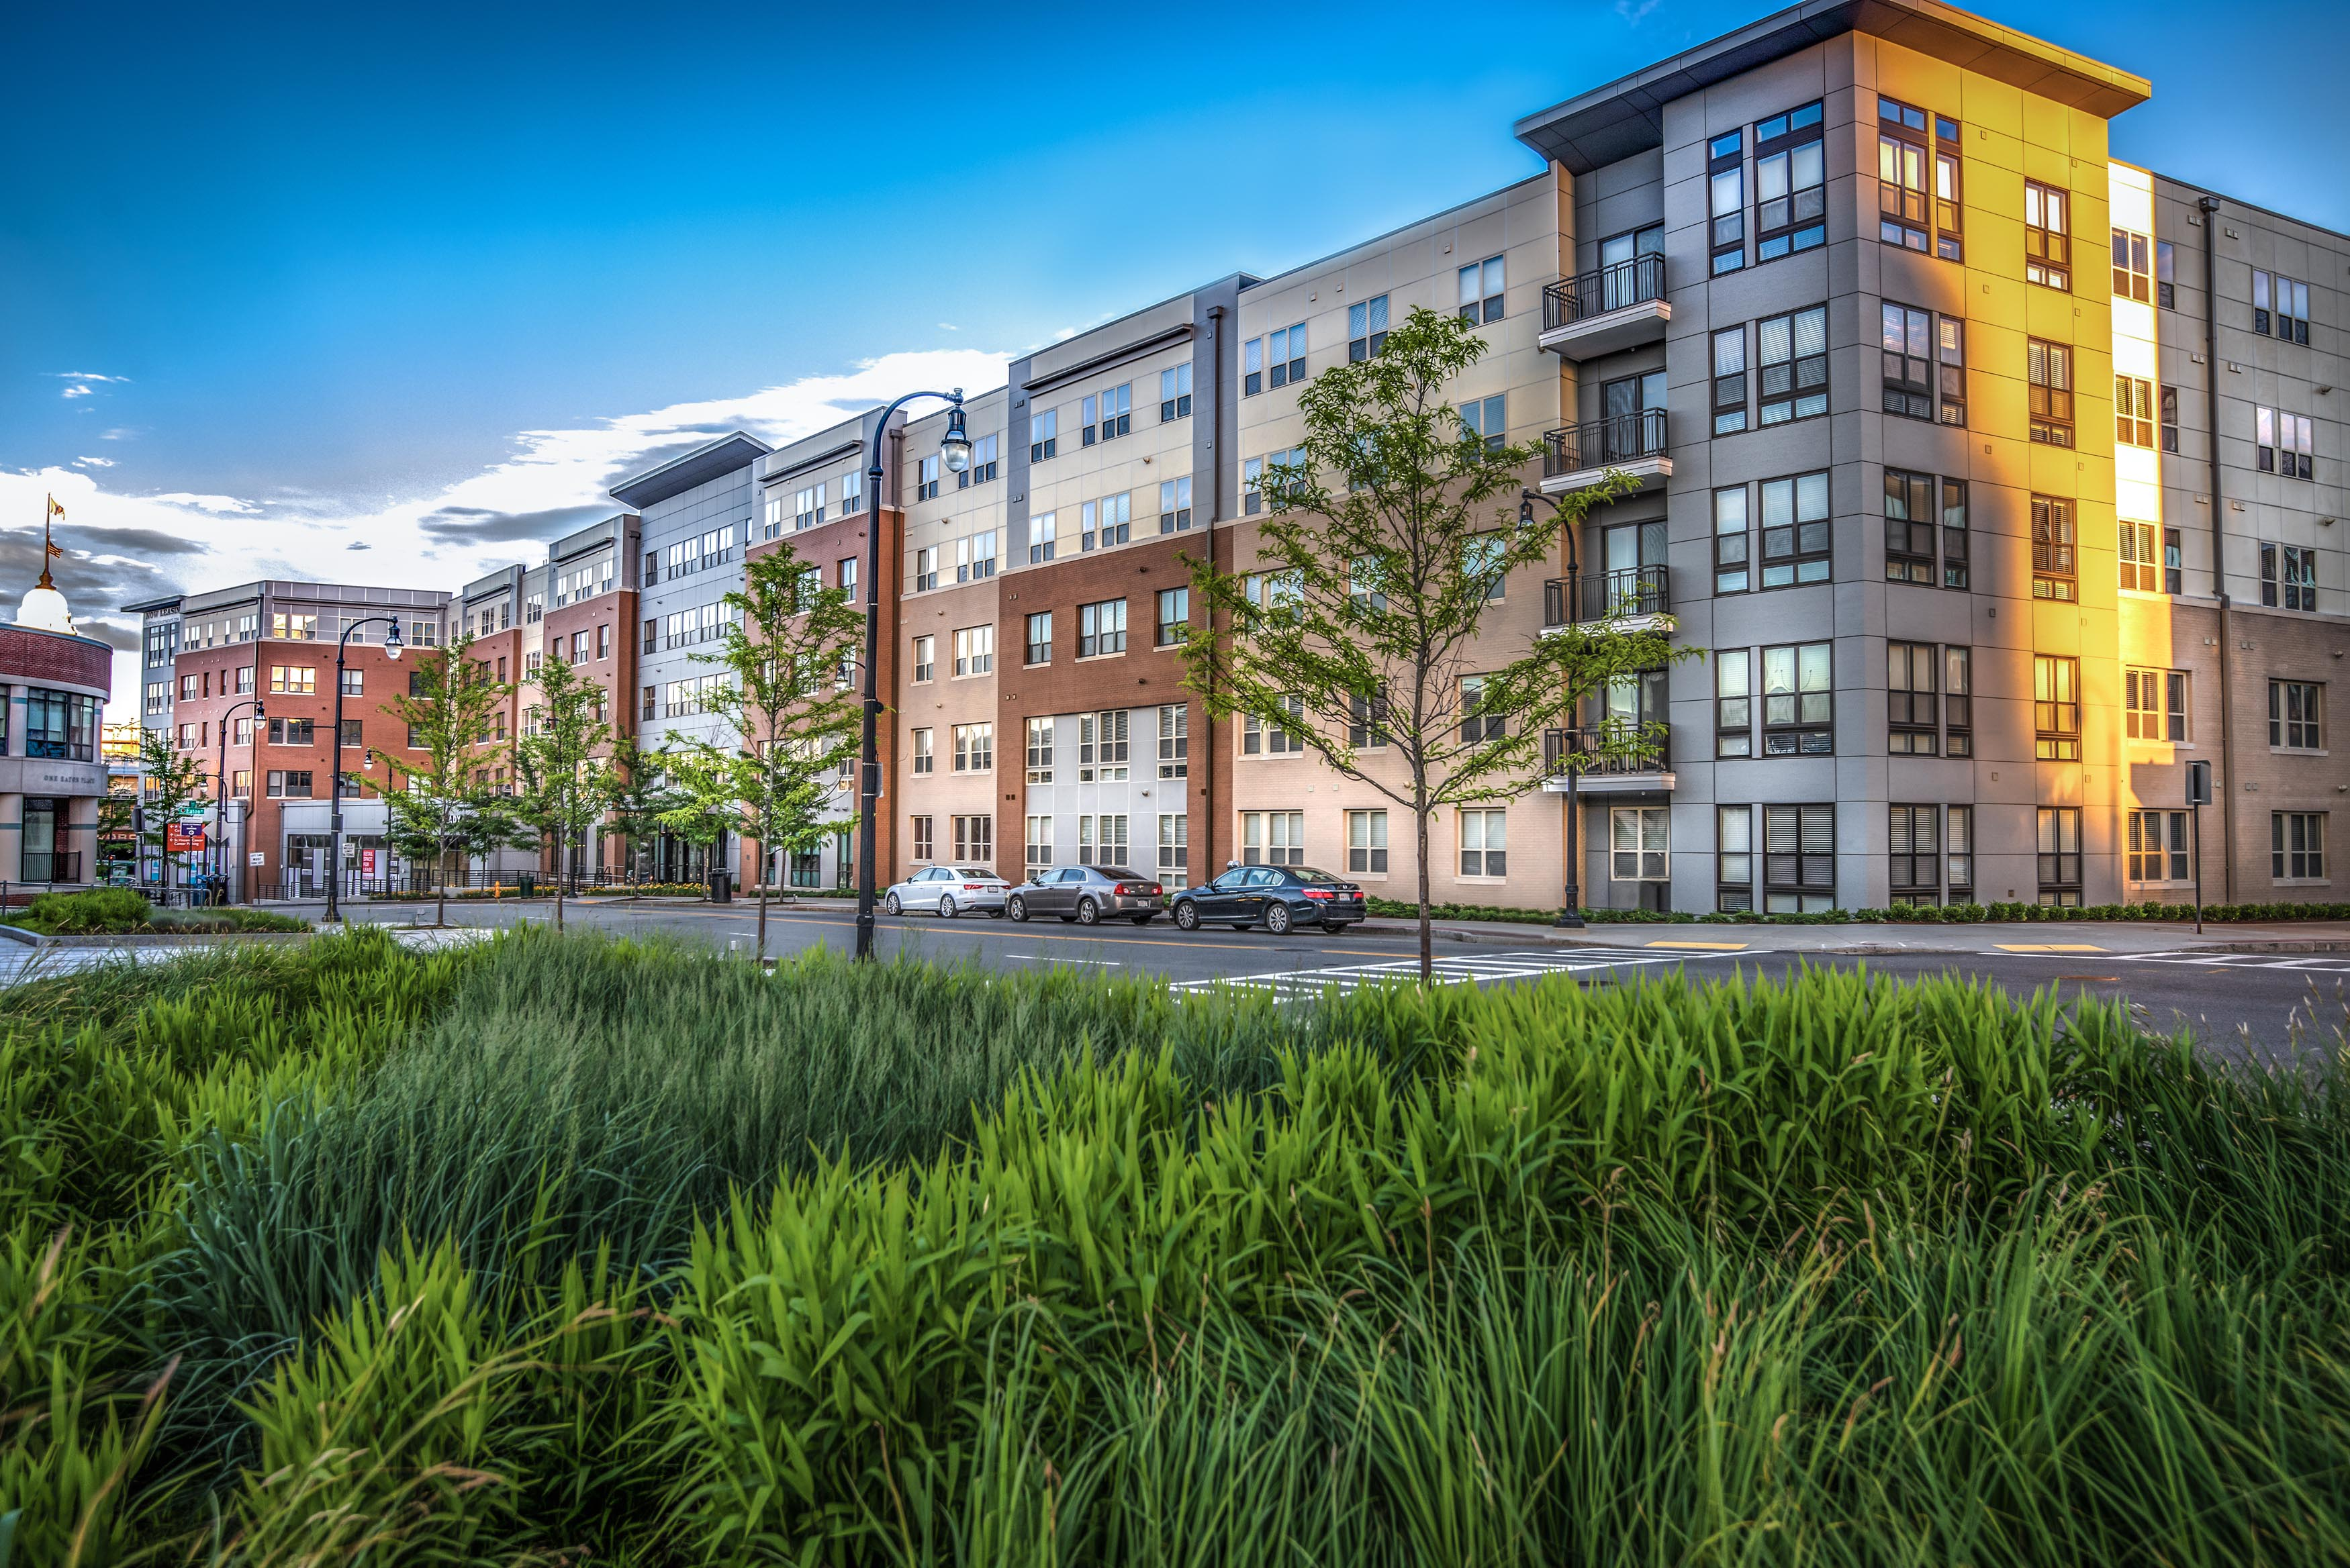 20 Best Apartments In Worcester 019c4254b